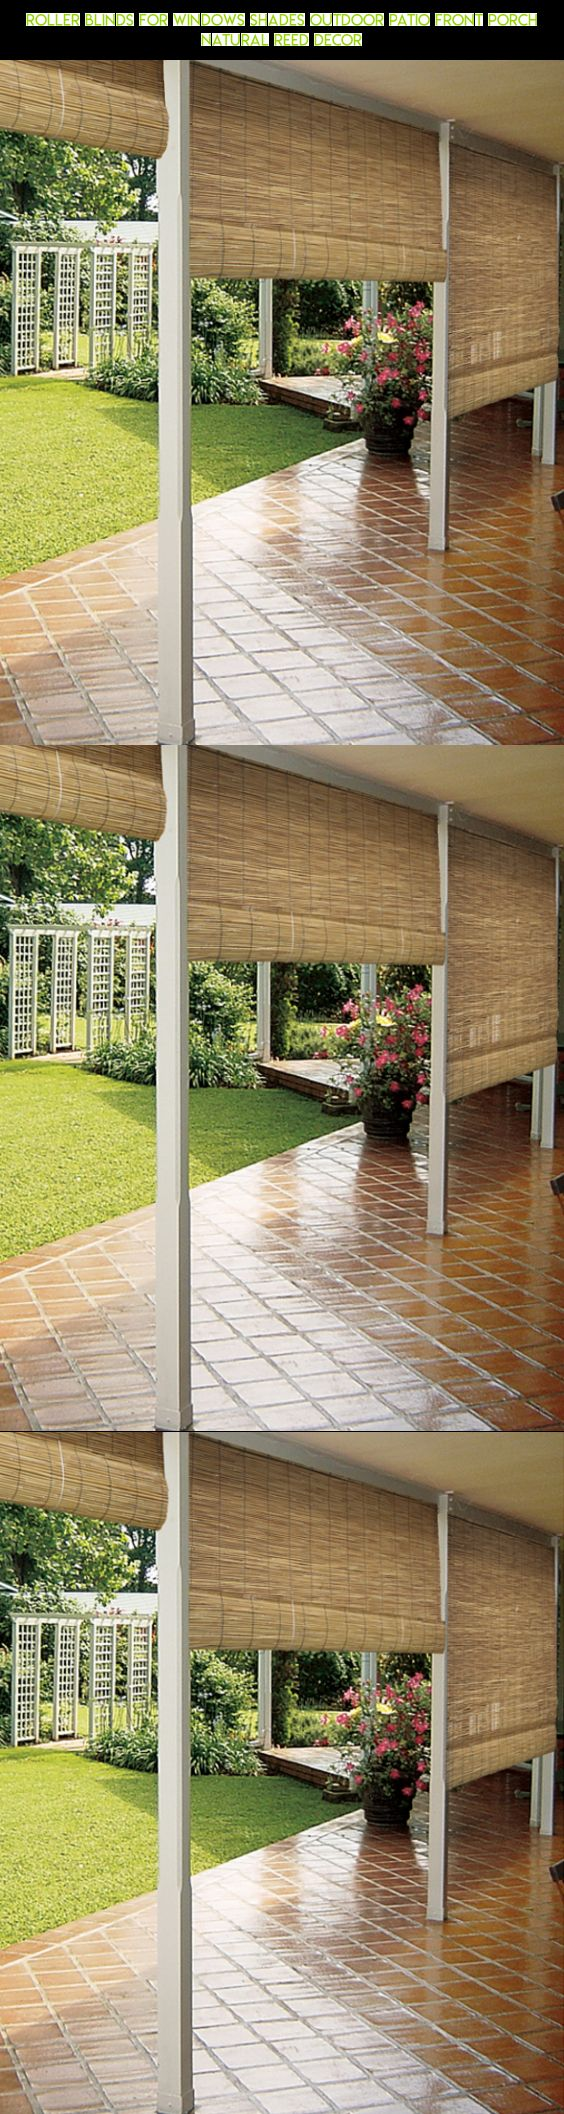 Betterliving fabric shades marketing patio cover recent posts sunrooms - Roller Blinds For Windows Shades Outdoor Patio Front Porch Natural Reed Decor Products Drone